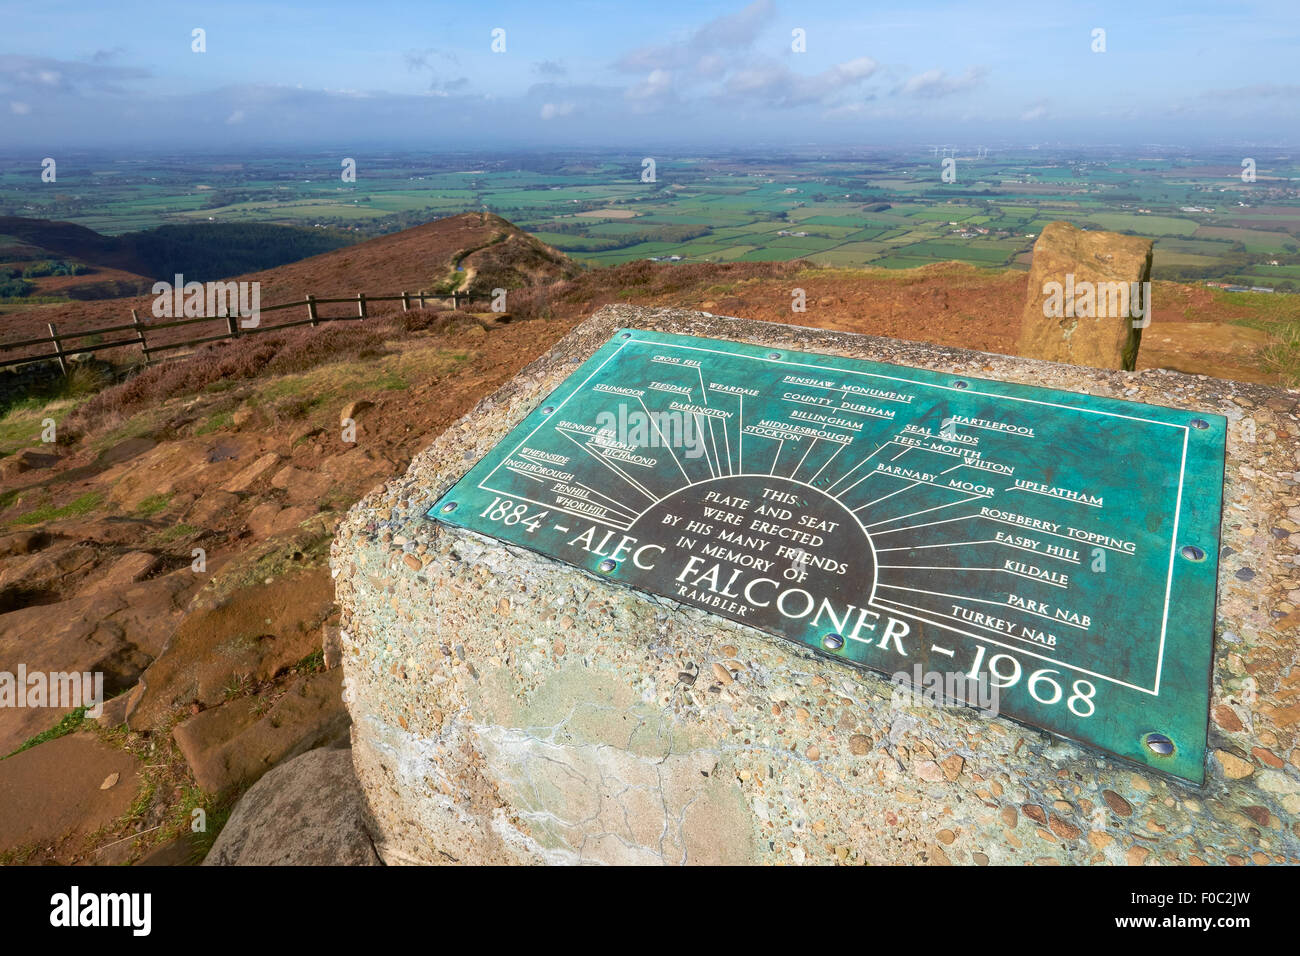 View point and memorial for Alec Falconer on the Cleveland Way North York Moors, UK. - Stock Image